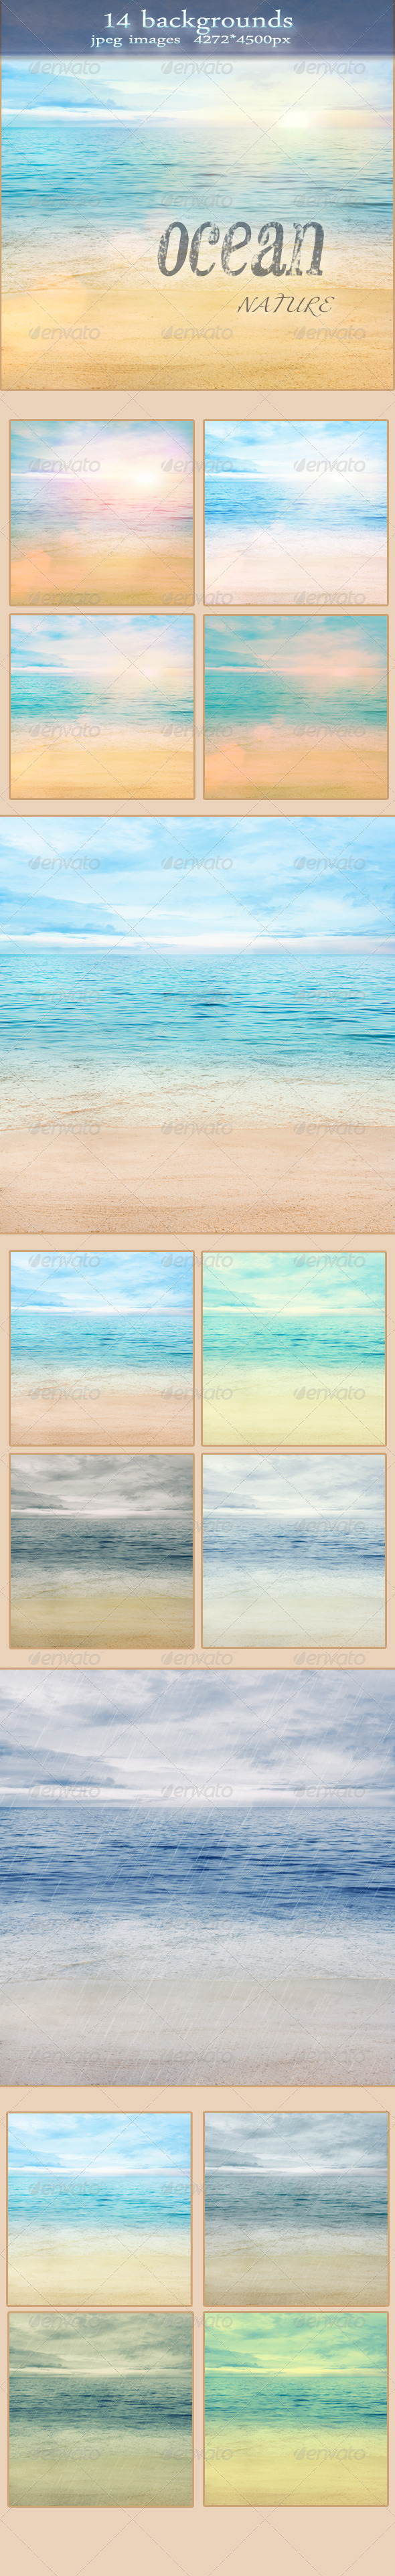 Nature Summer Ocean Backgrounds with Sand Beach - Nature Backgrounds